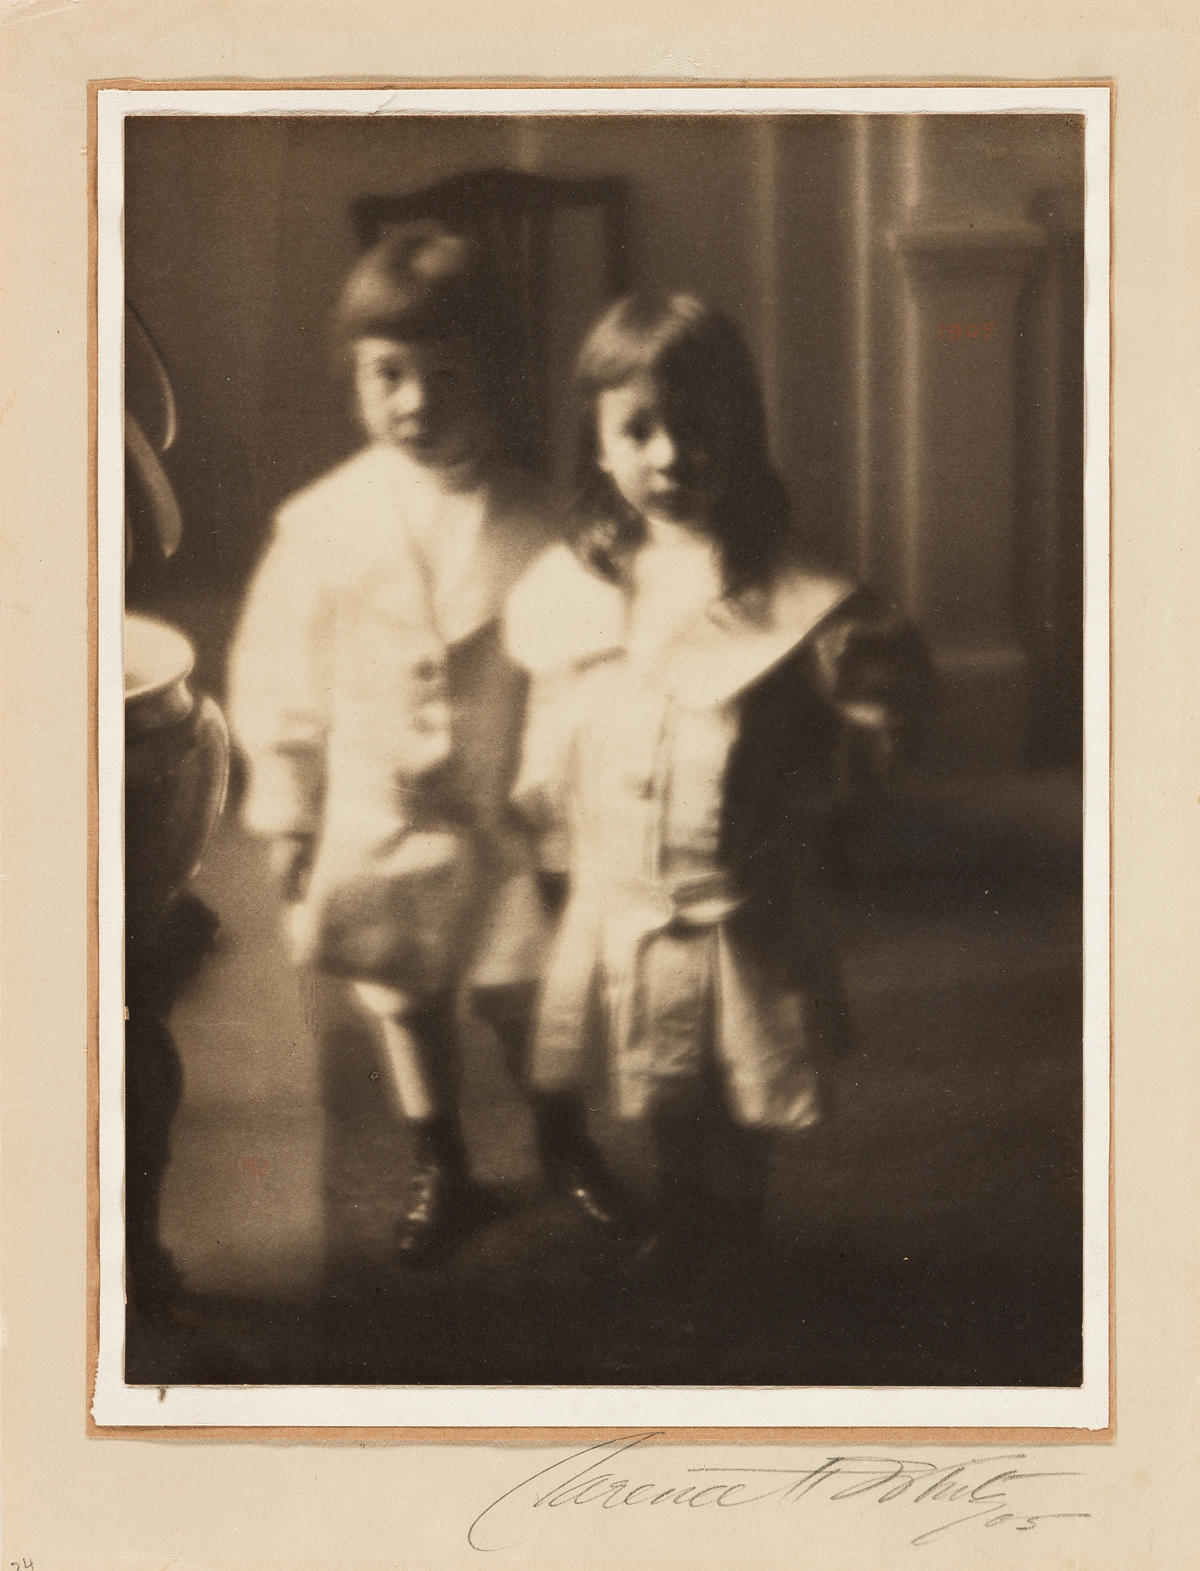 CLARENCE H. WHITE (1871-1925) Portrait of two children, Milman Hart and Vincent Bliss Linn.